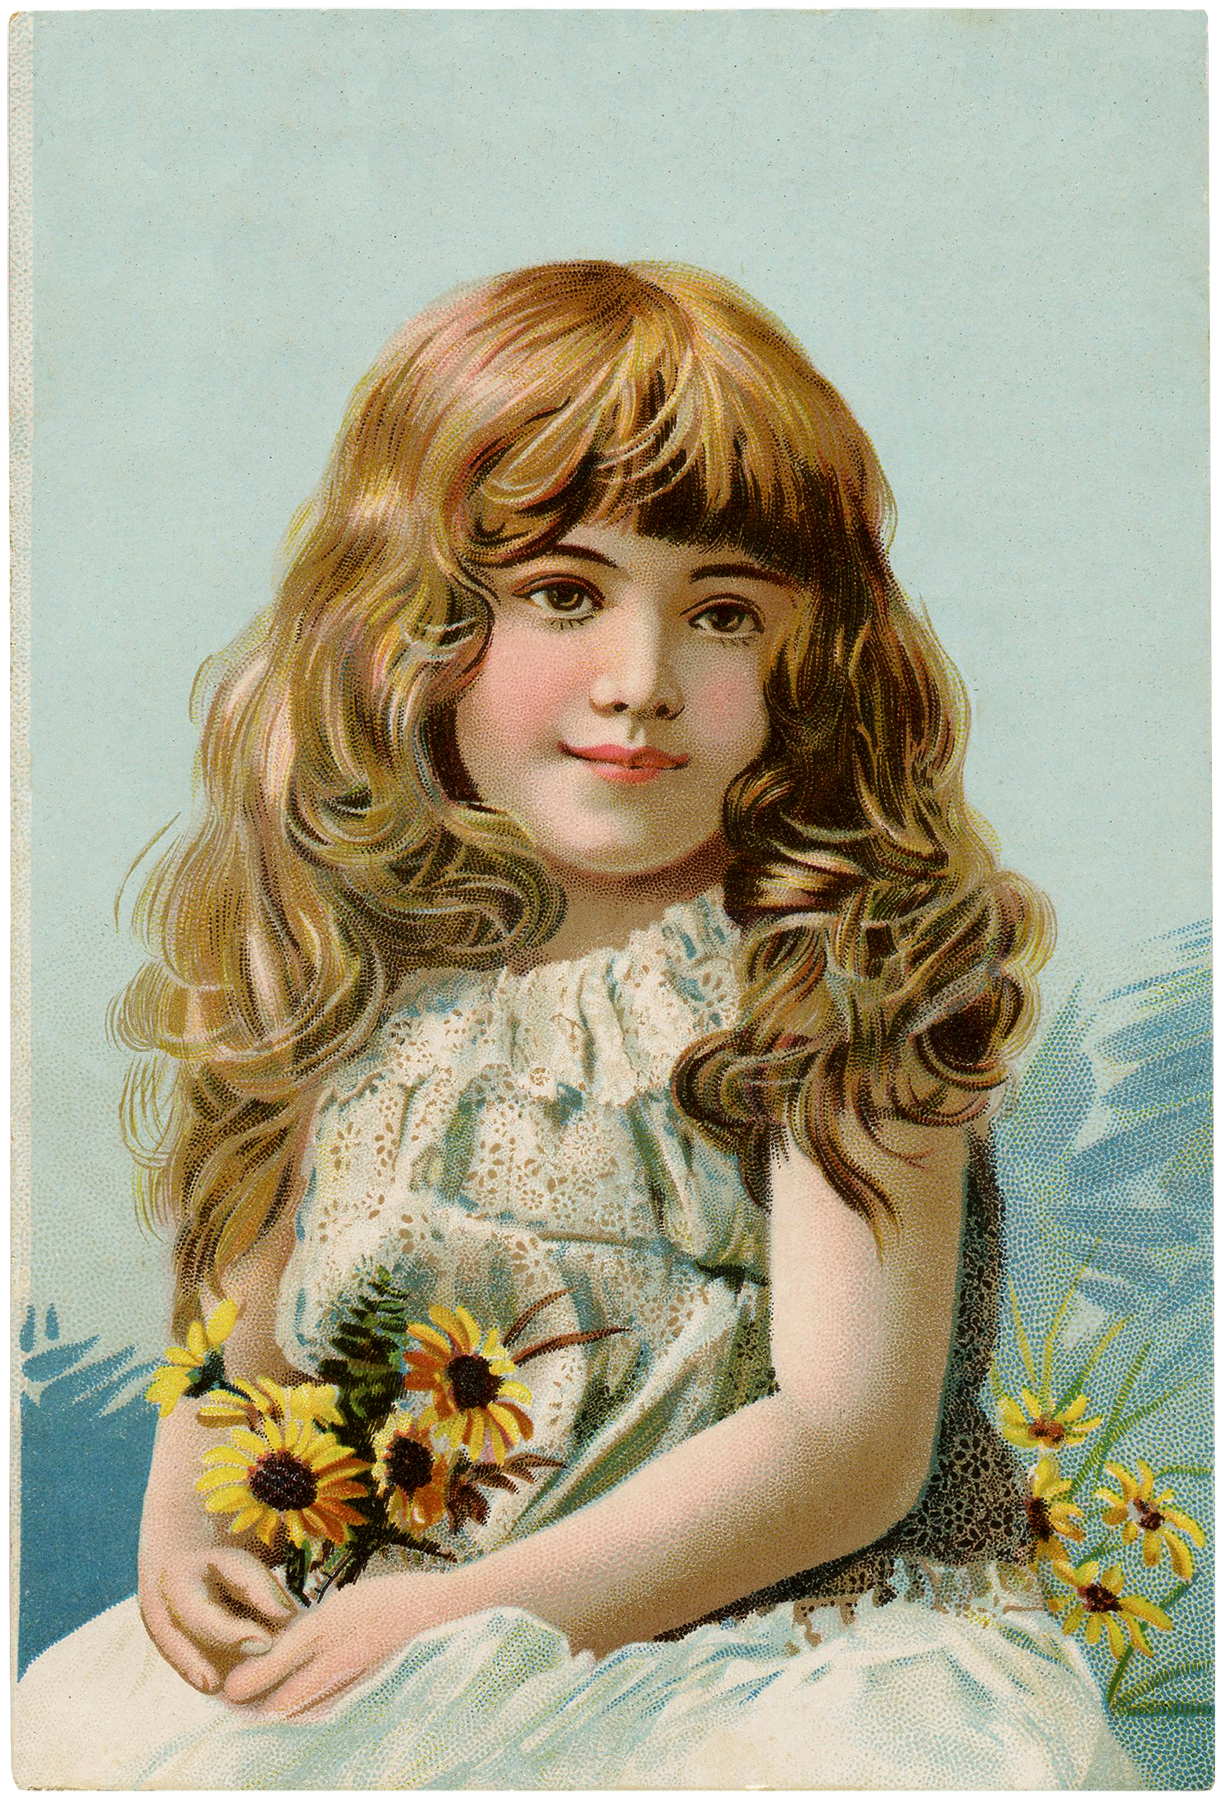 Vintage Pretty Girl Image!